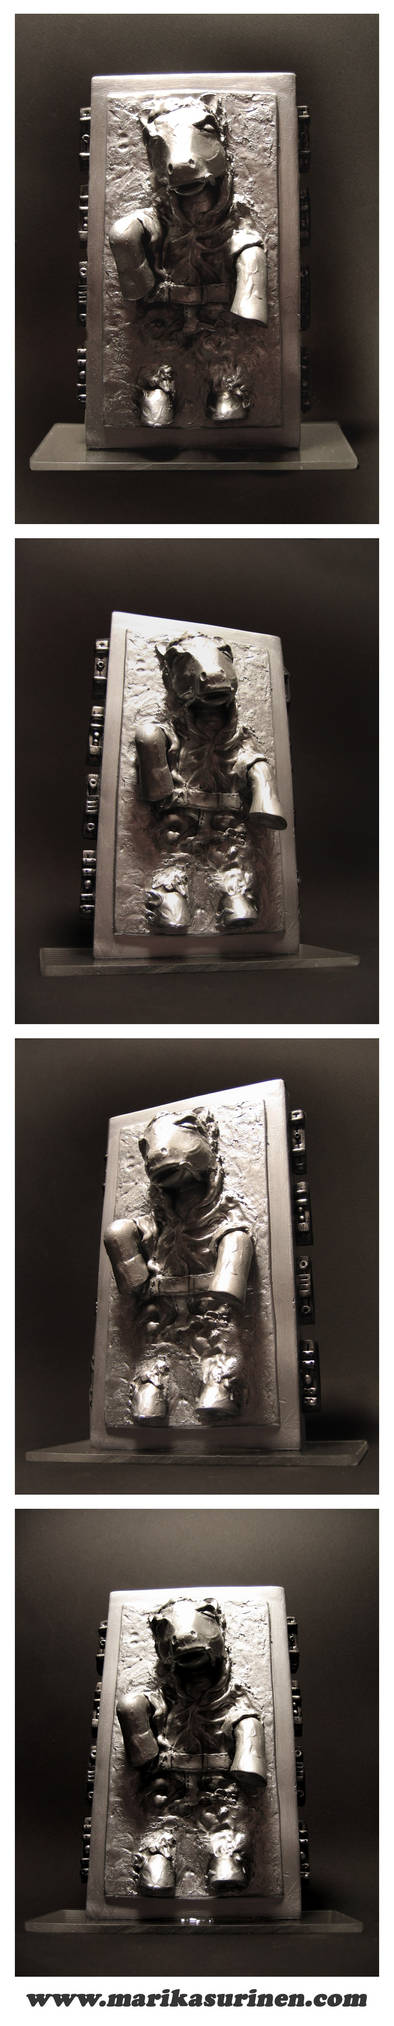 My Little Solo in Carbonite by Spippo